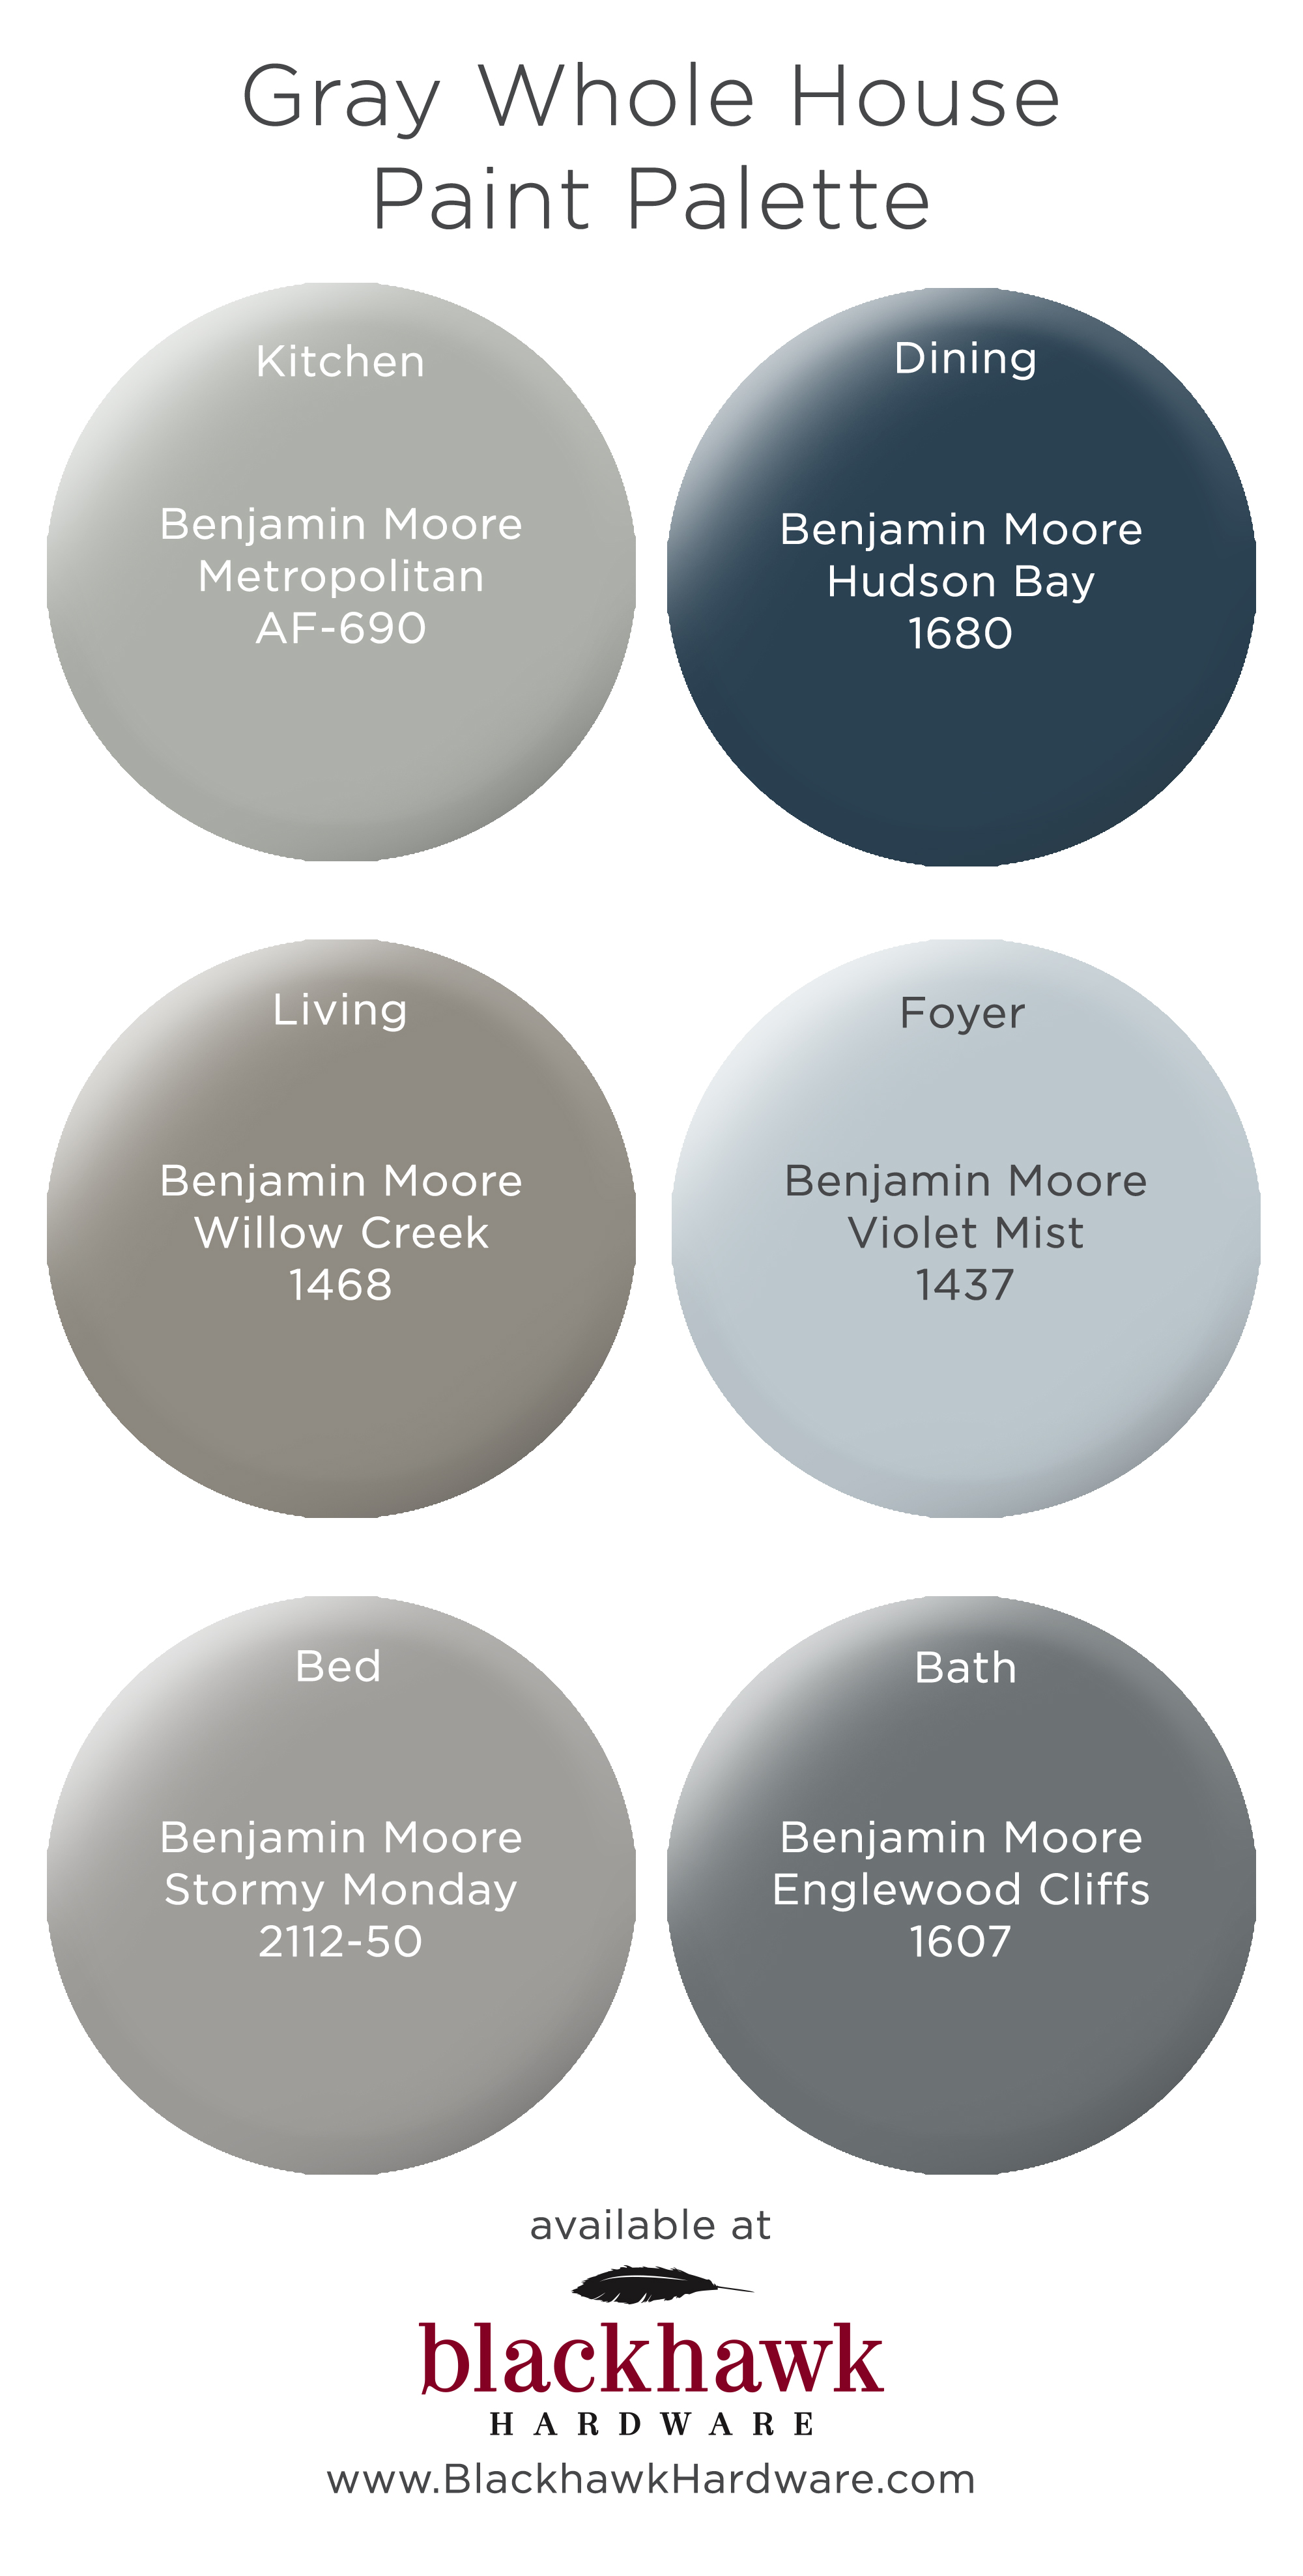 Gray Whole House Benjamin Moore Paint Palette